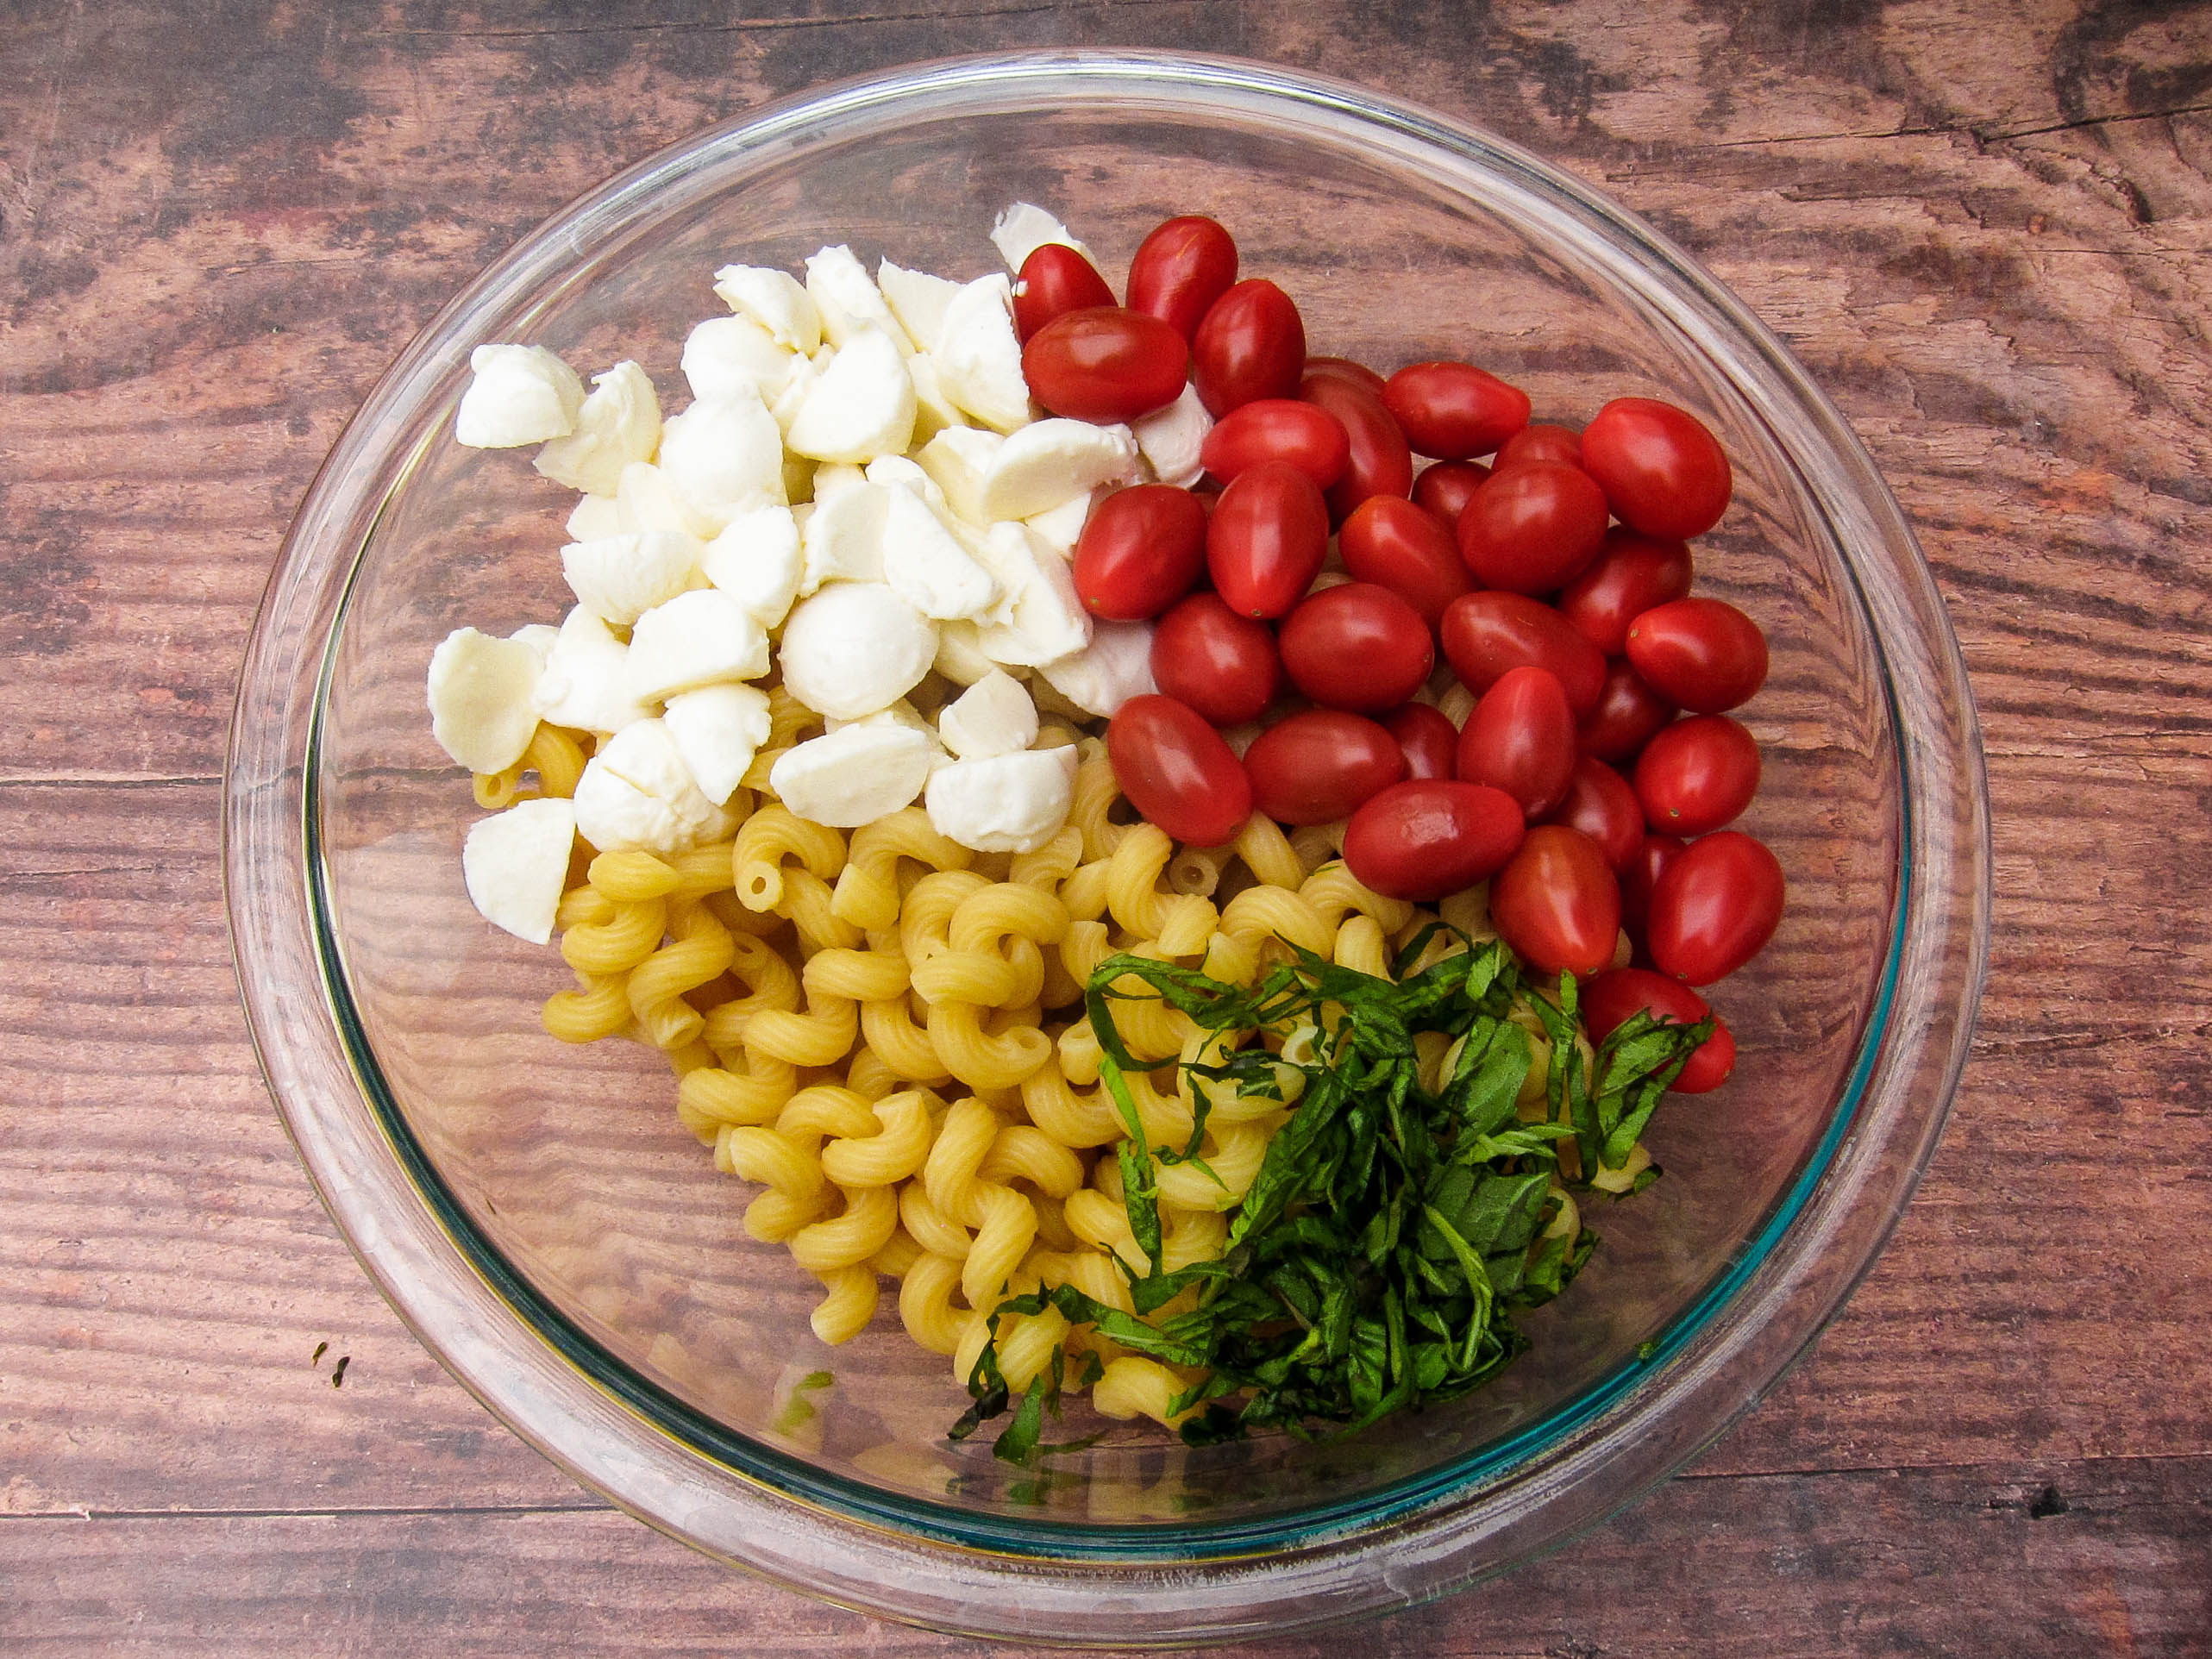 Salad ingredients in a bowl unmixed